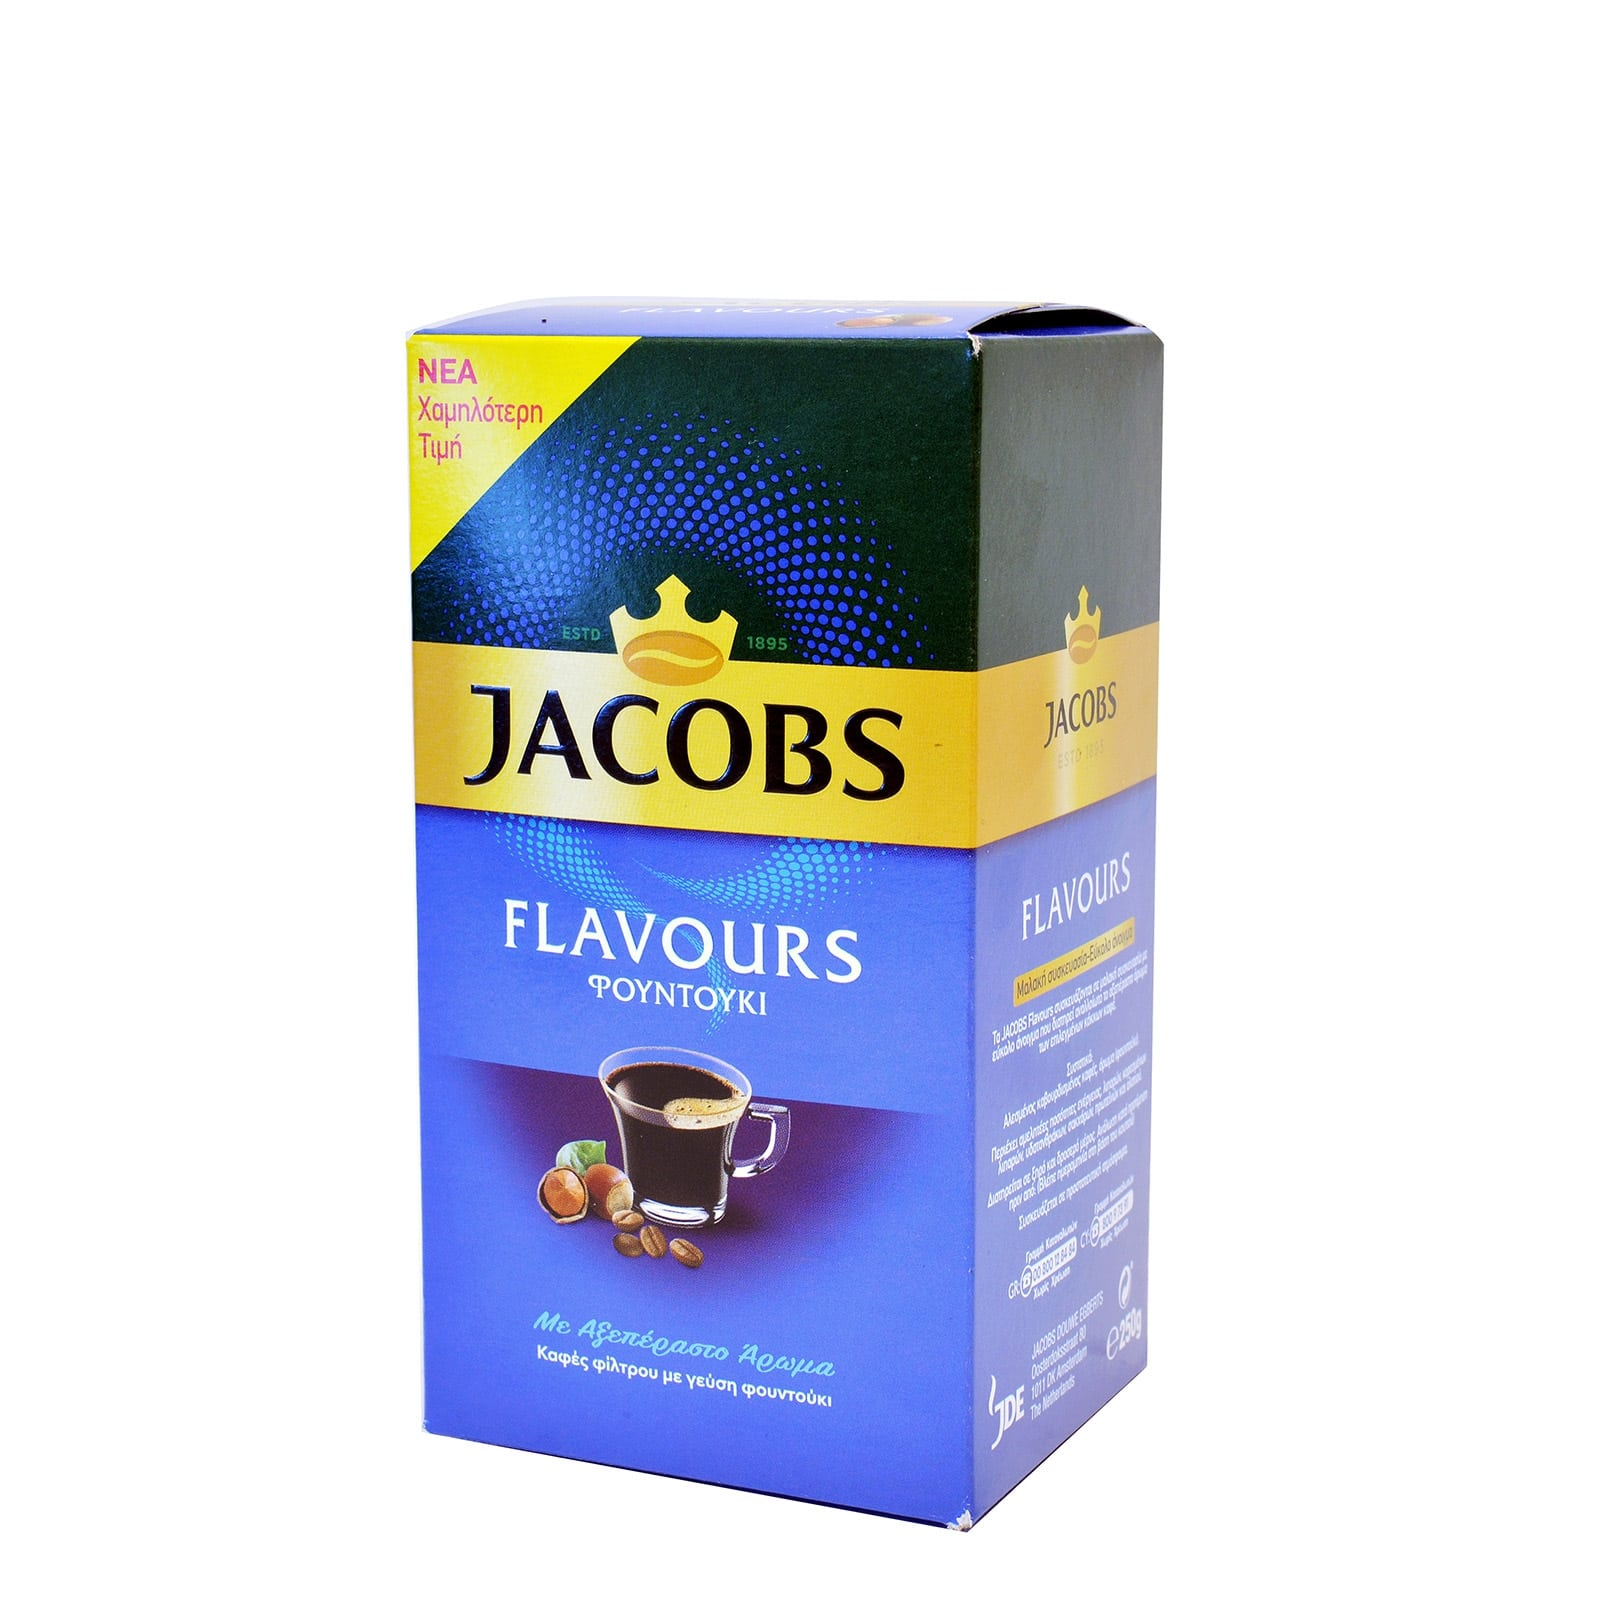 76a3cbcd75 Jacobs Flavours Filter Coffee Hazelnut   Καφές Φίλτρου Φουντούκι 250g